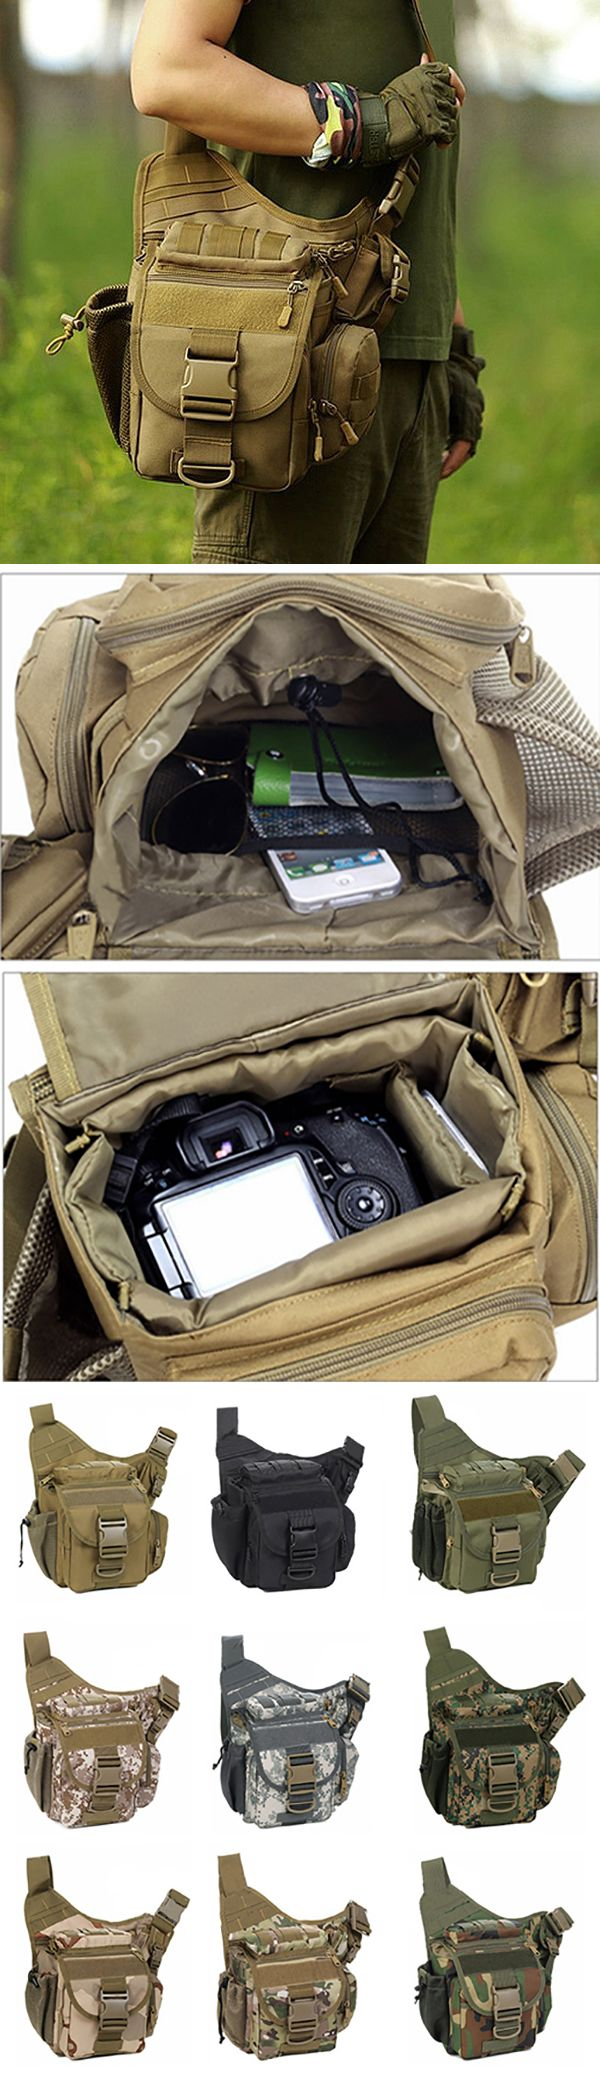 Men Outfit: Outdoor Multi-functional Crossbody Bag / Waterproof Nylon Camera Bag  / Tactical Package